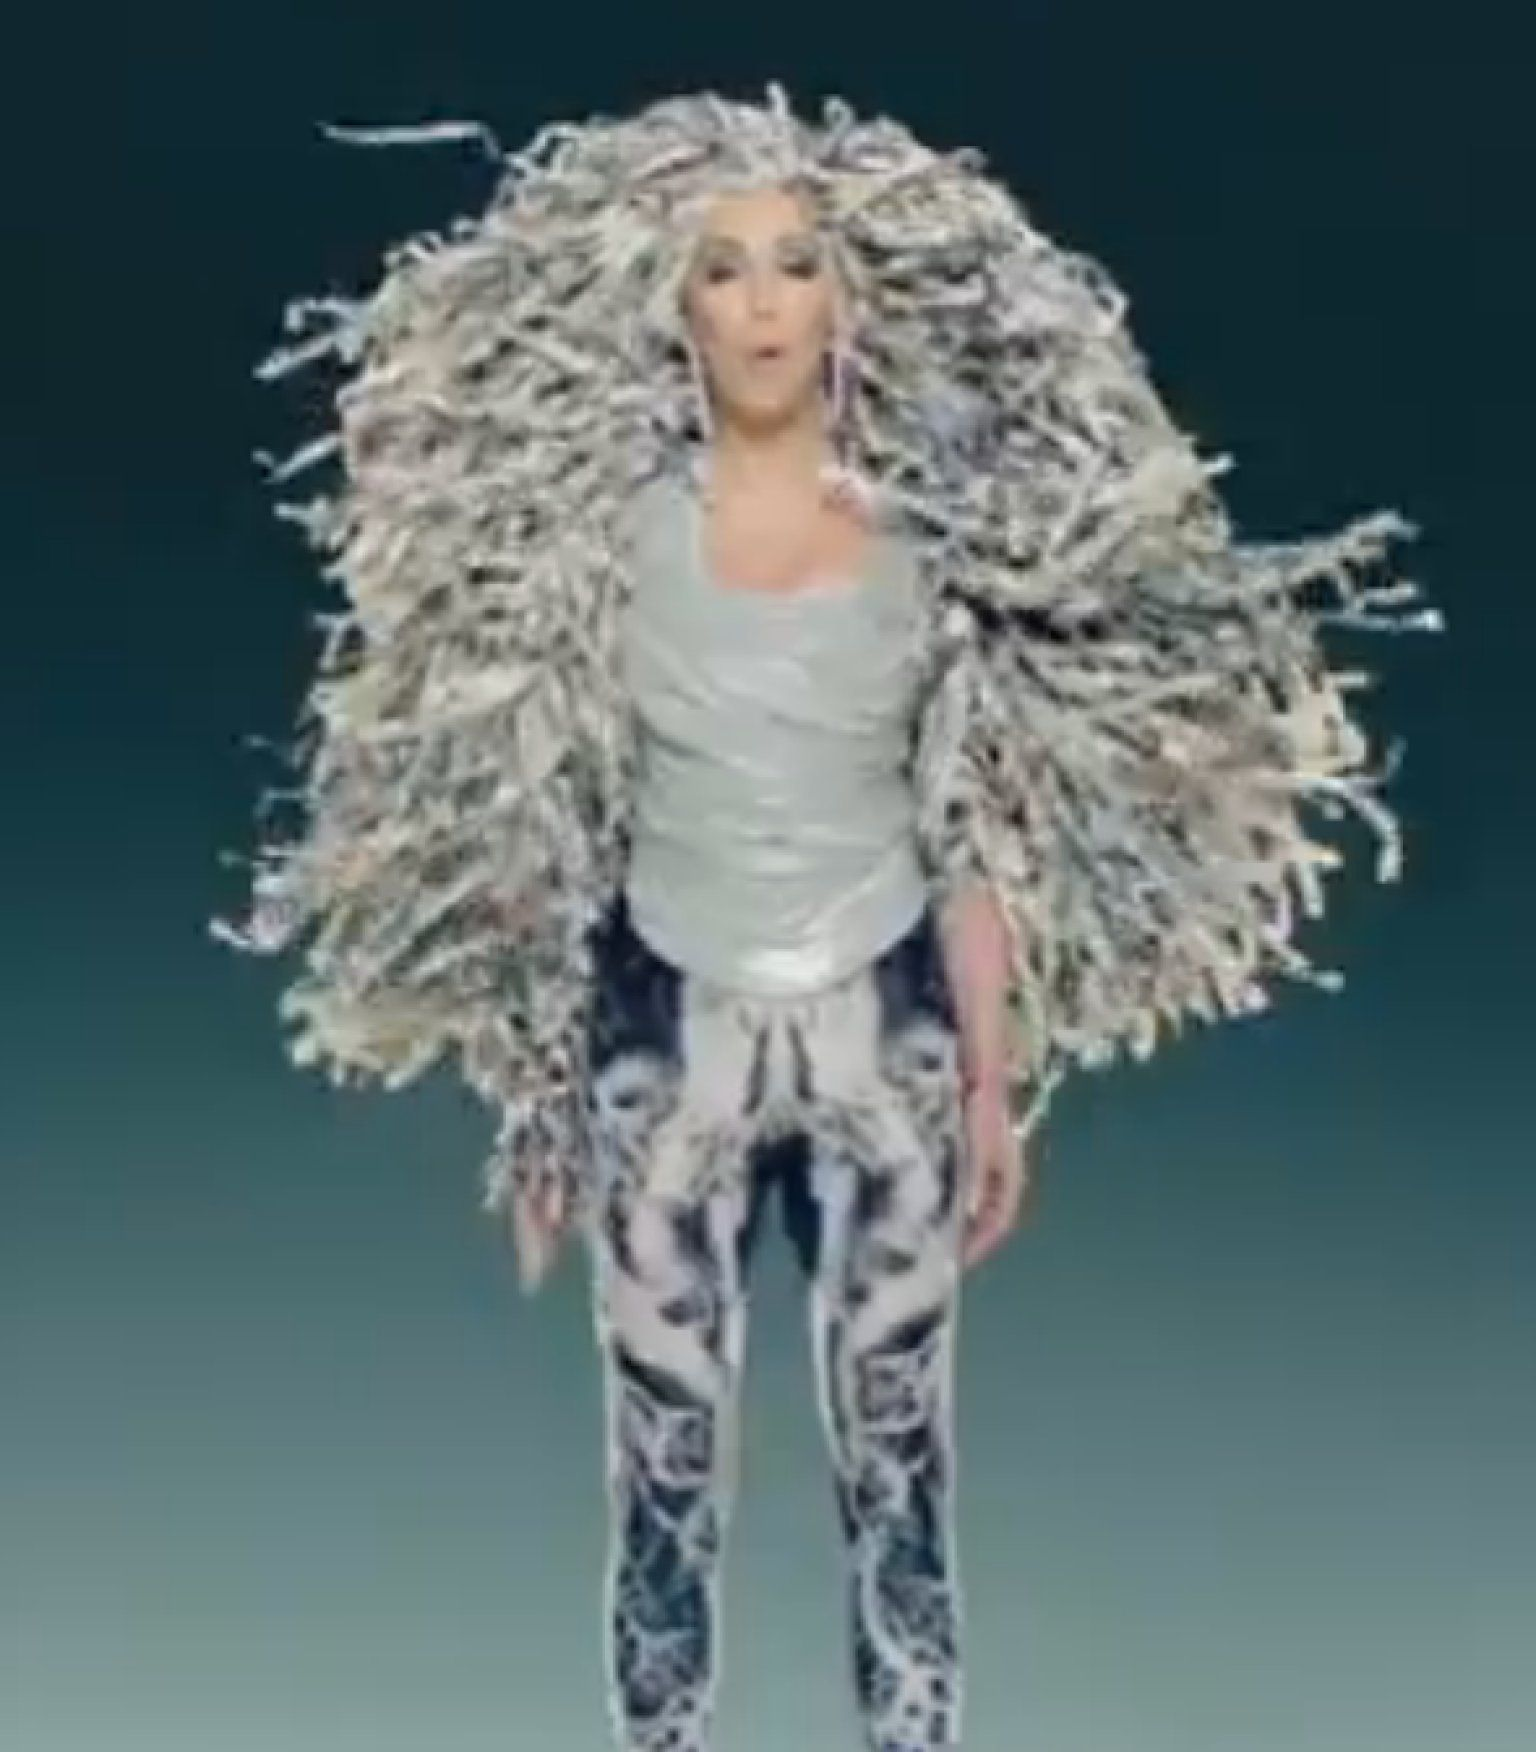 701ffeeabf Cher s  Woman s World  Video Serves Up Female-Empowerment Anthem With  Plenty Of Outrageous Hairstyles